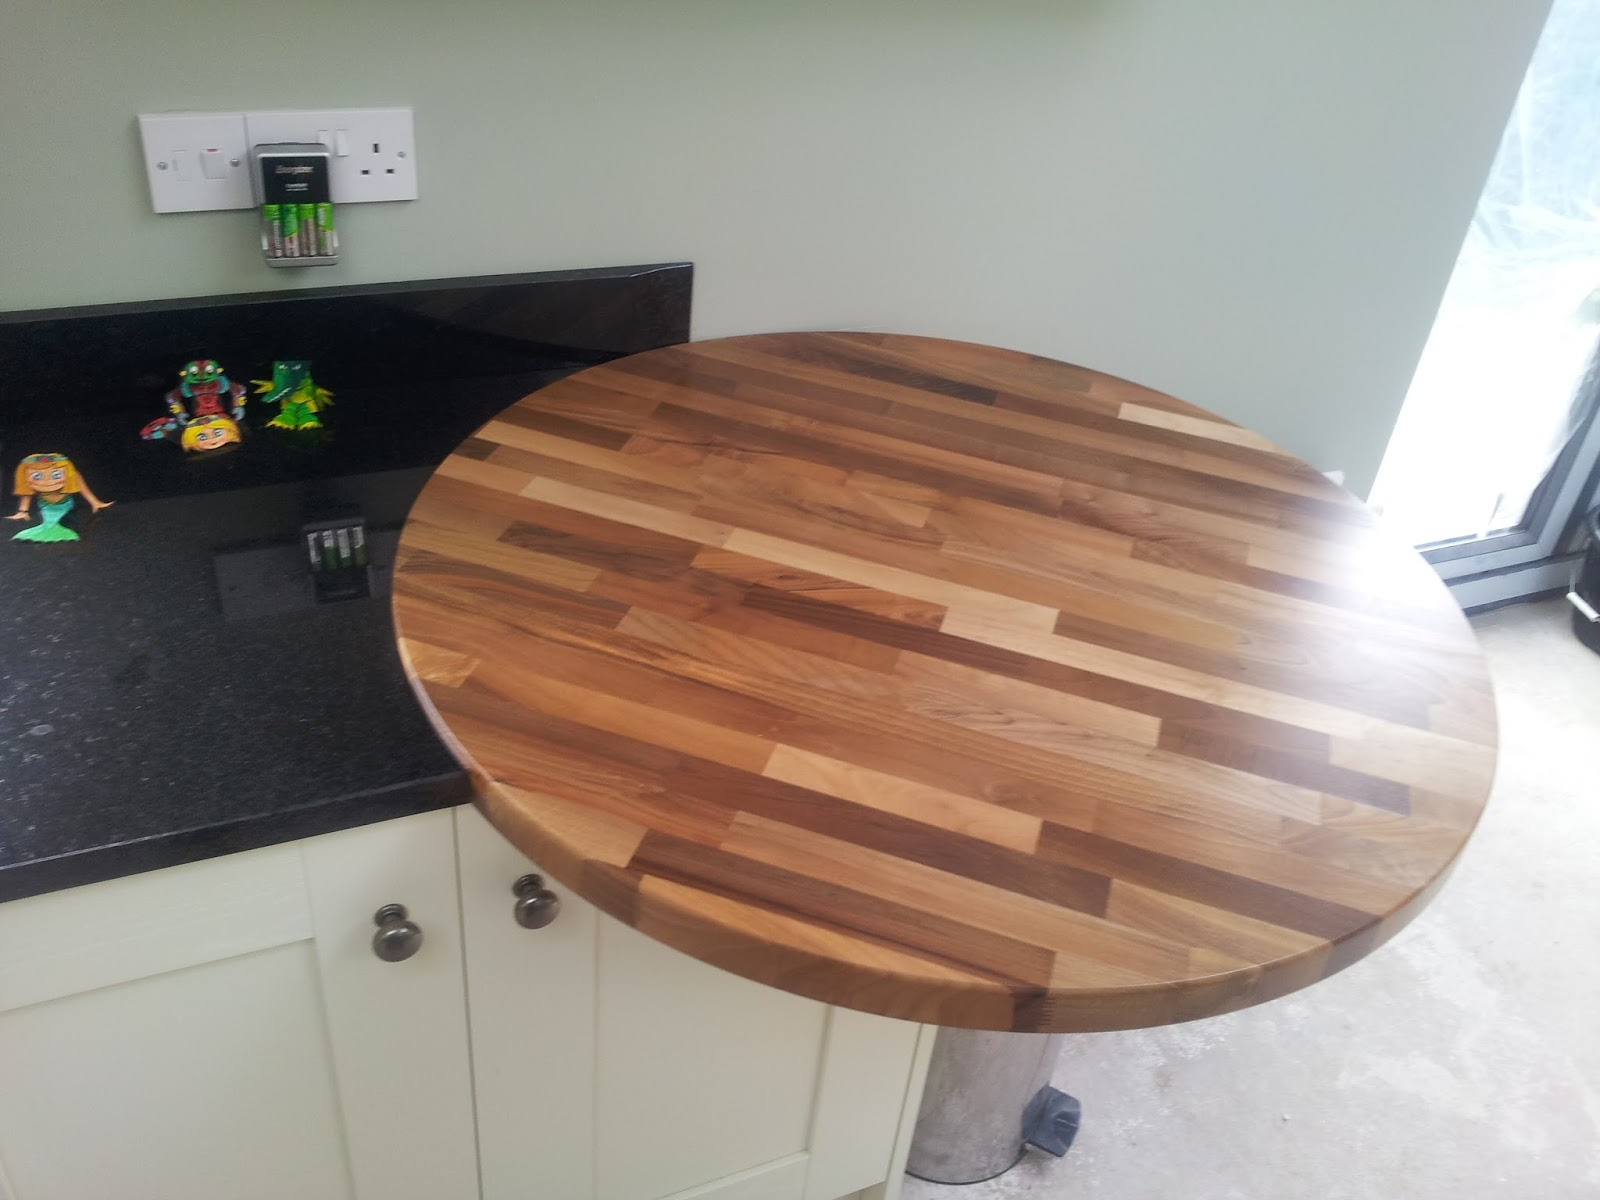 kitchens direct ni: granite meets wood at kitchens direct ni